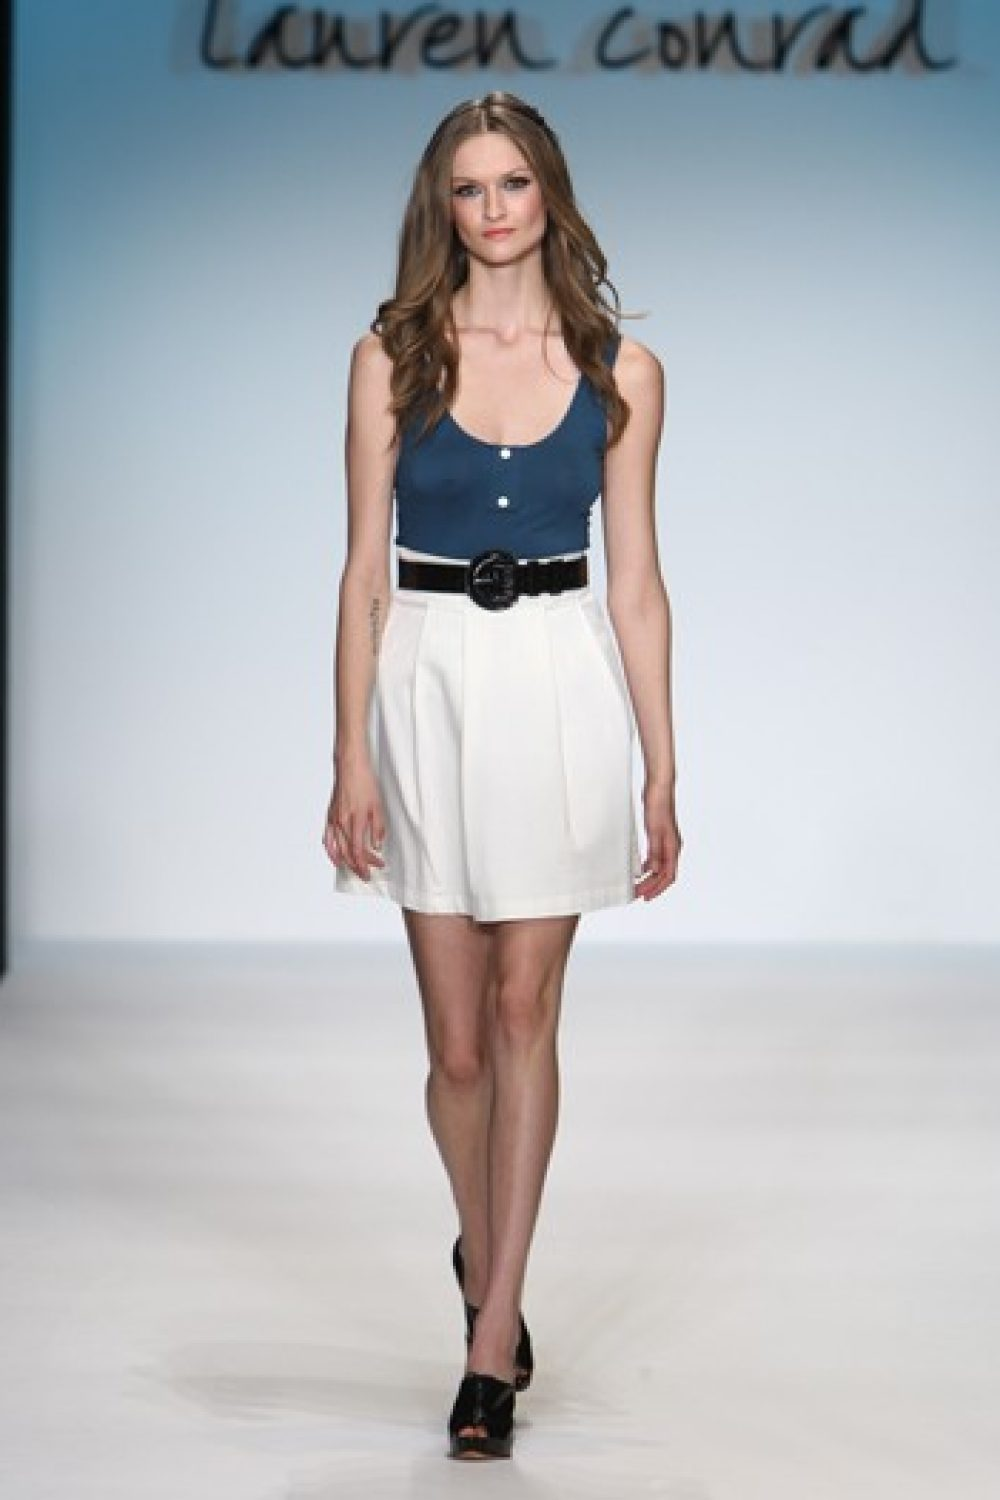 Lauren Conrad Collection Spring 2009